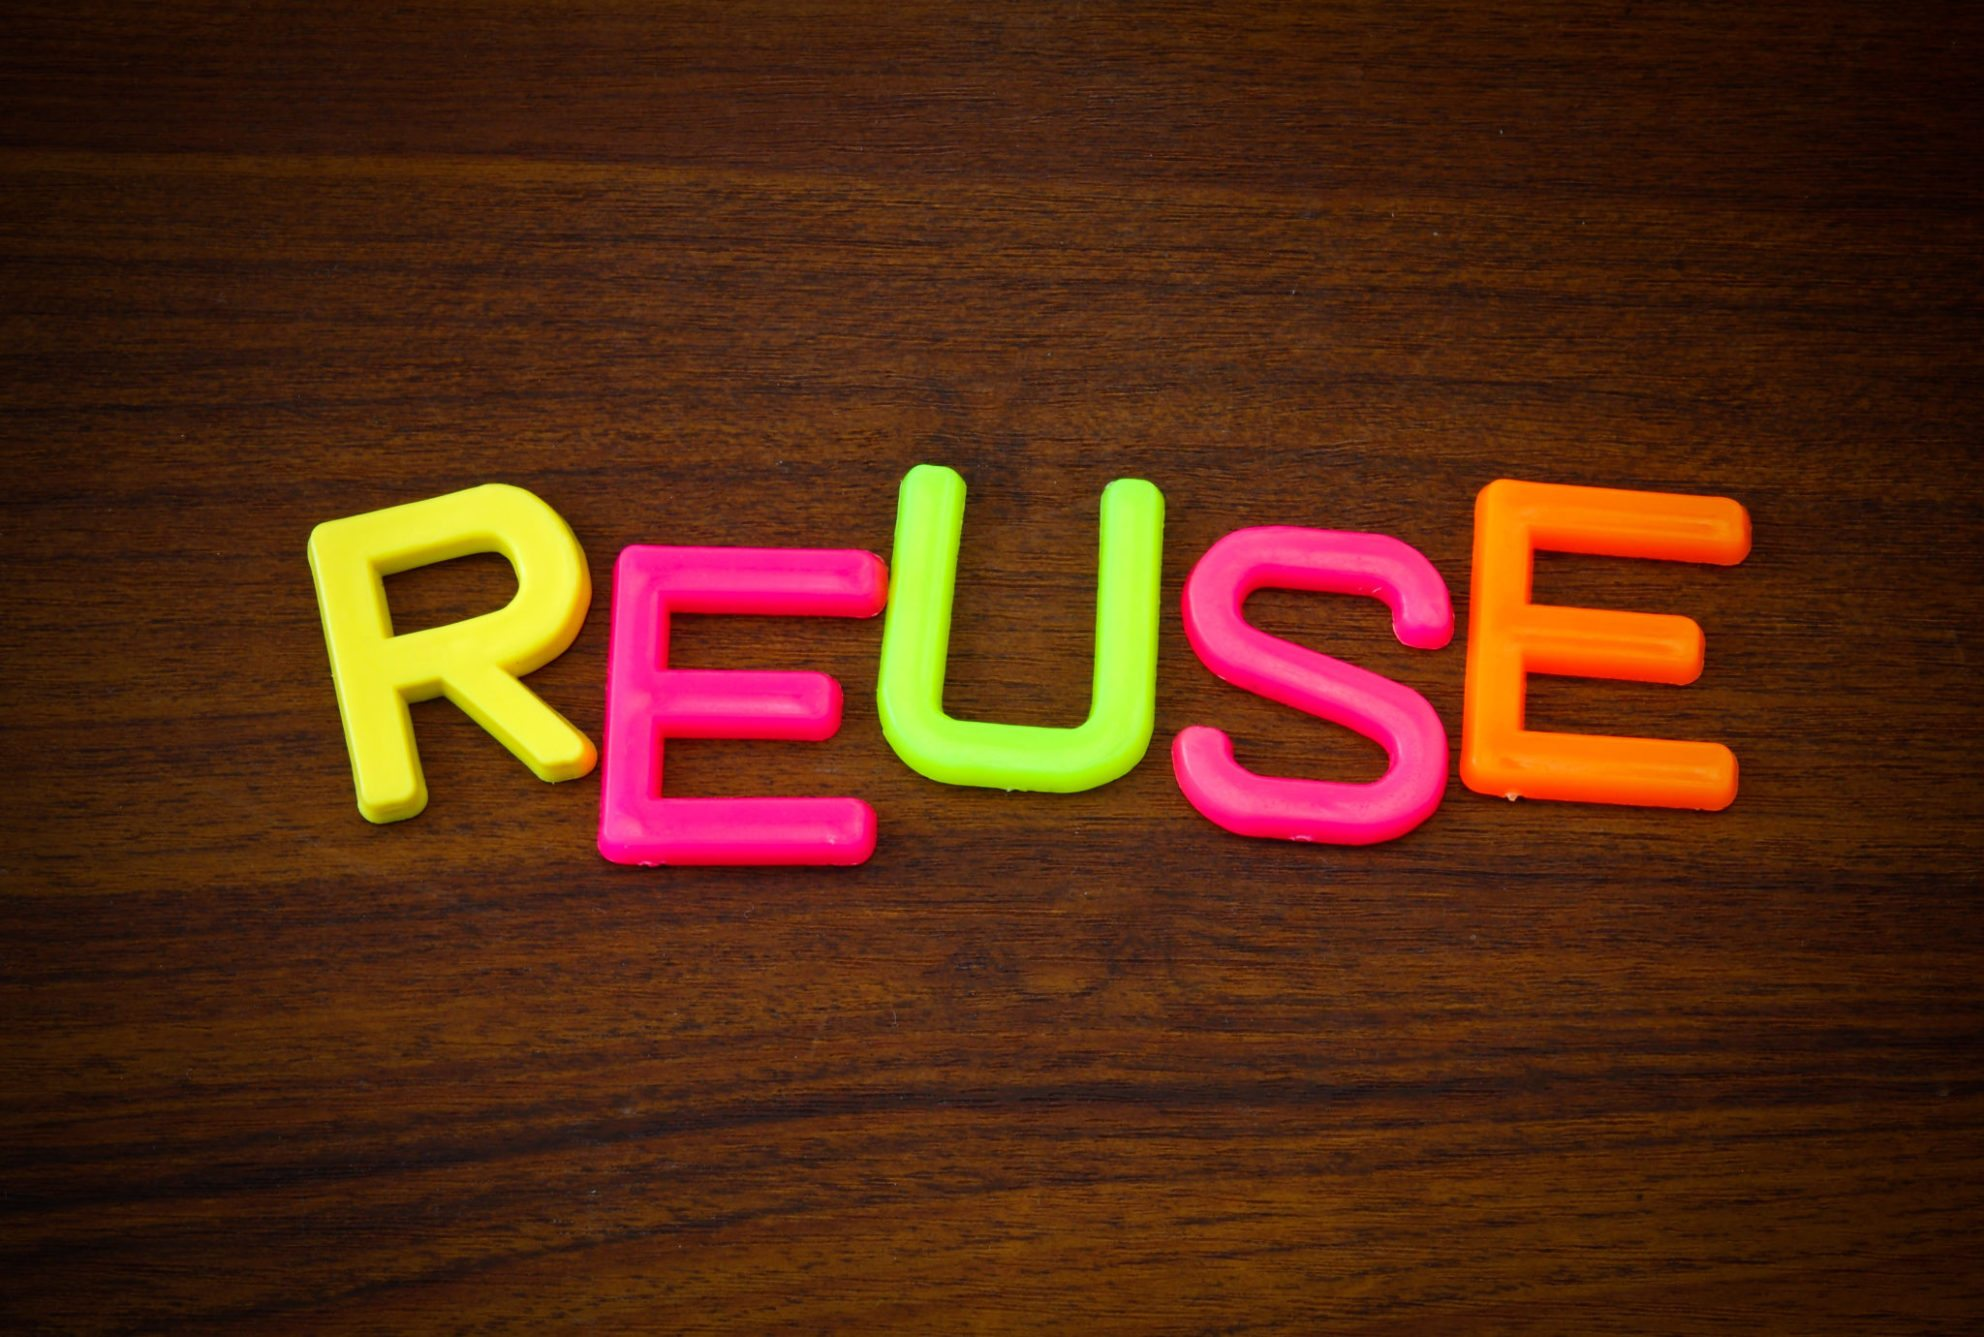 Pinterest, Flickr, e-books among top ways to repurpose your existing content, boost SEO